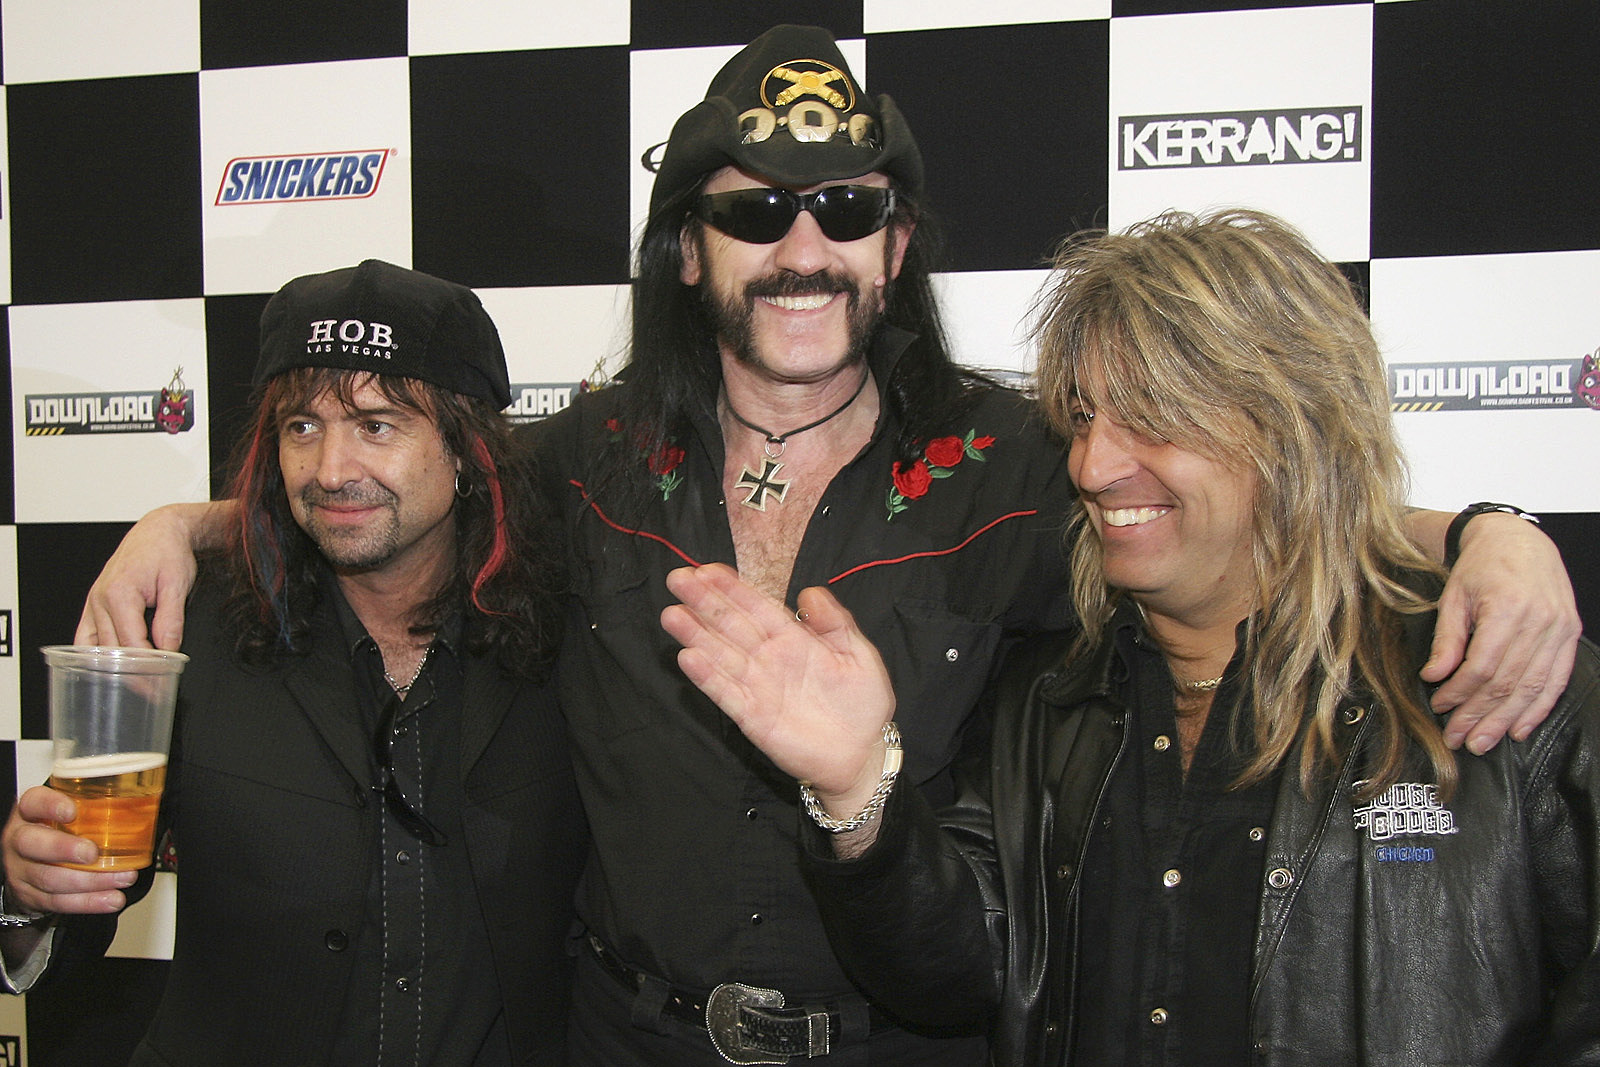 Mikkey Dee, Phil Campbell Added to Motorhead's Rock Hall of Fame Nomination